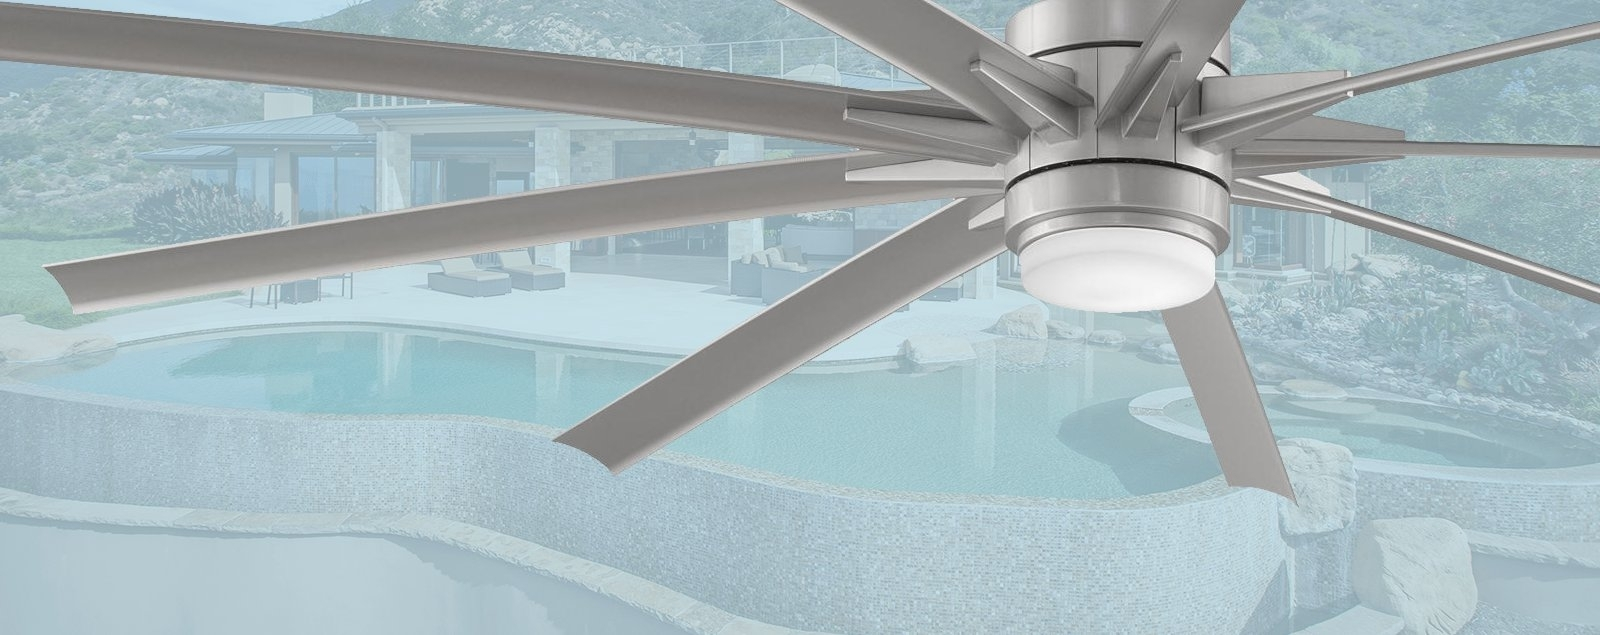 "Well Known Large Outdoor Ceiling Fans – Outdoor Fans Over 60"" In Diameter In High Volume Outdoor Ceiling Fans (View 20 of 20)"